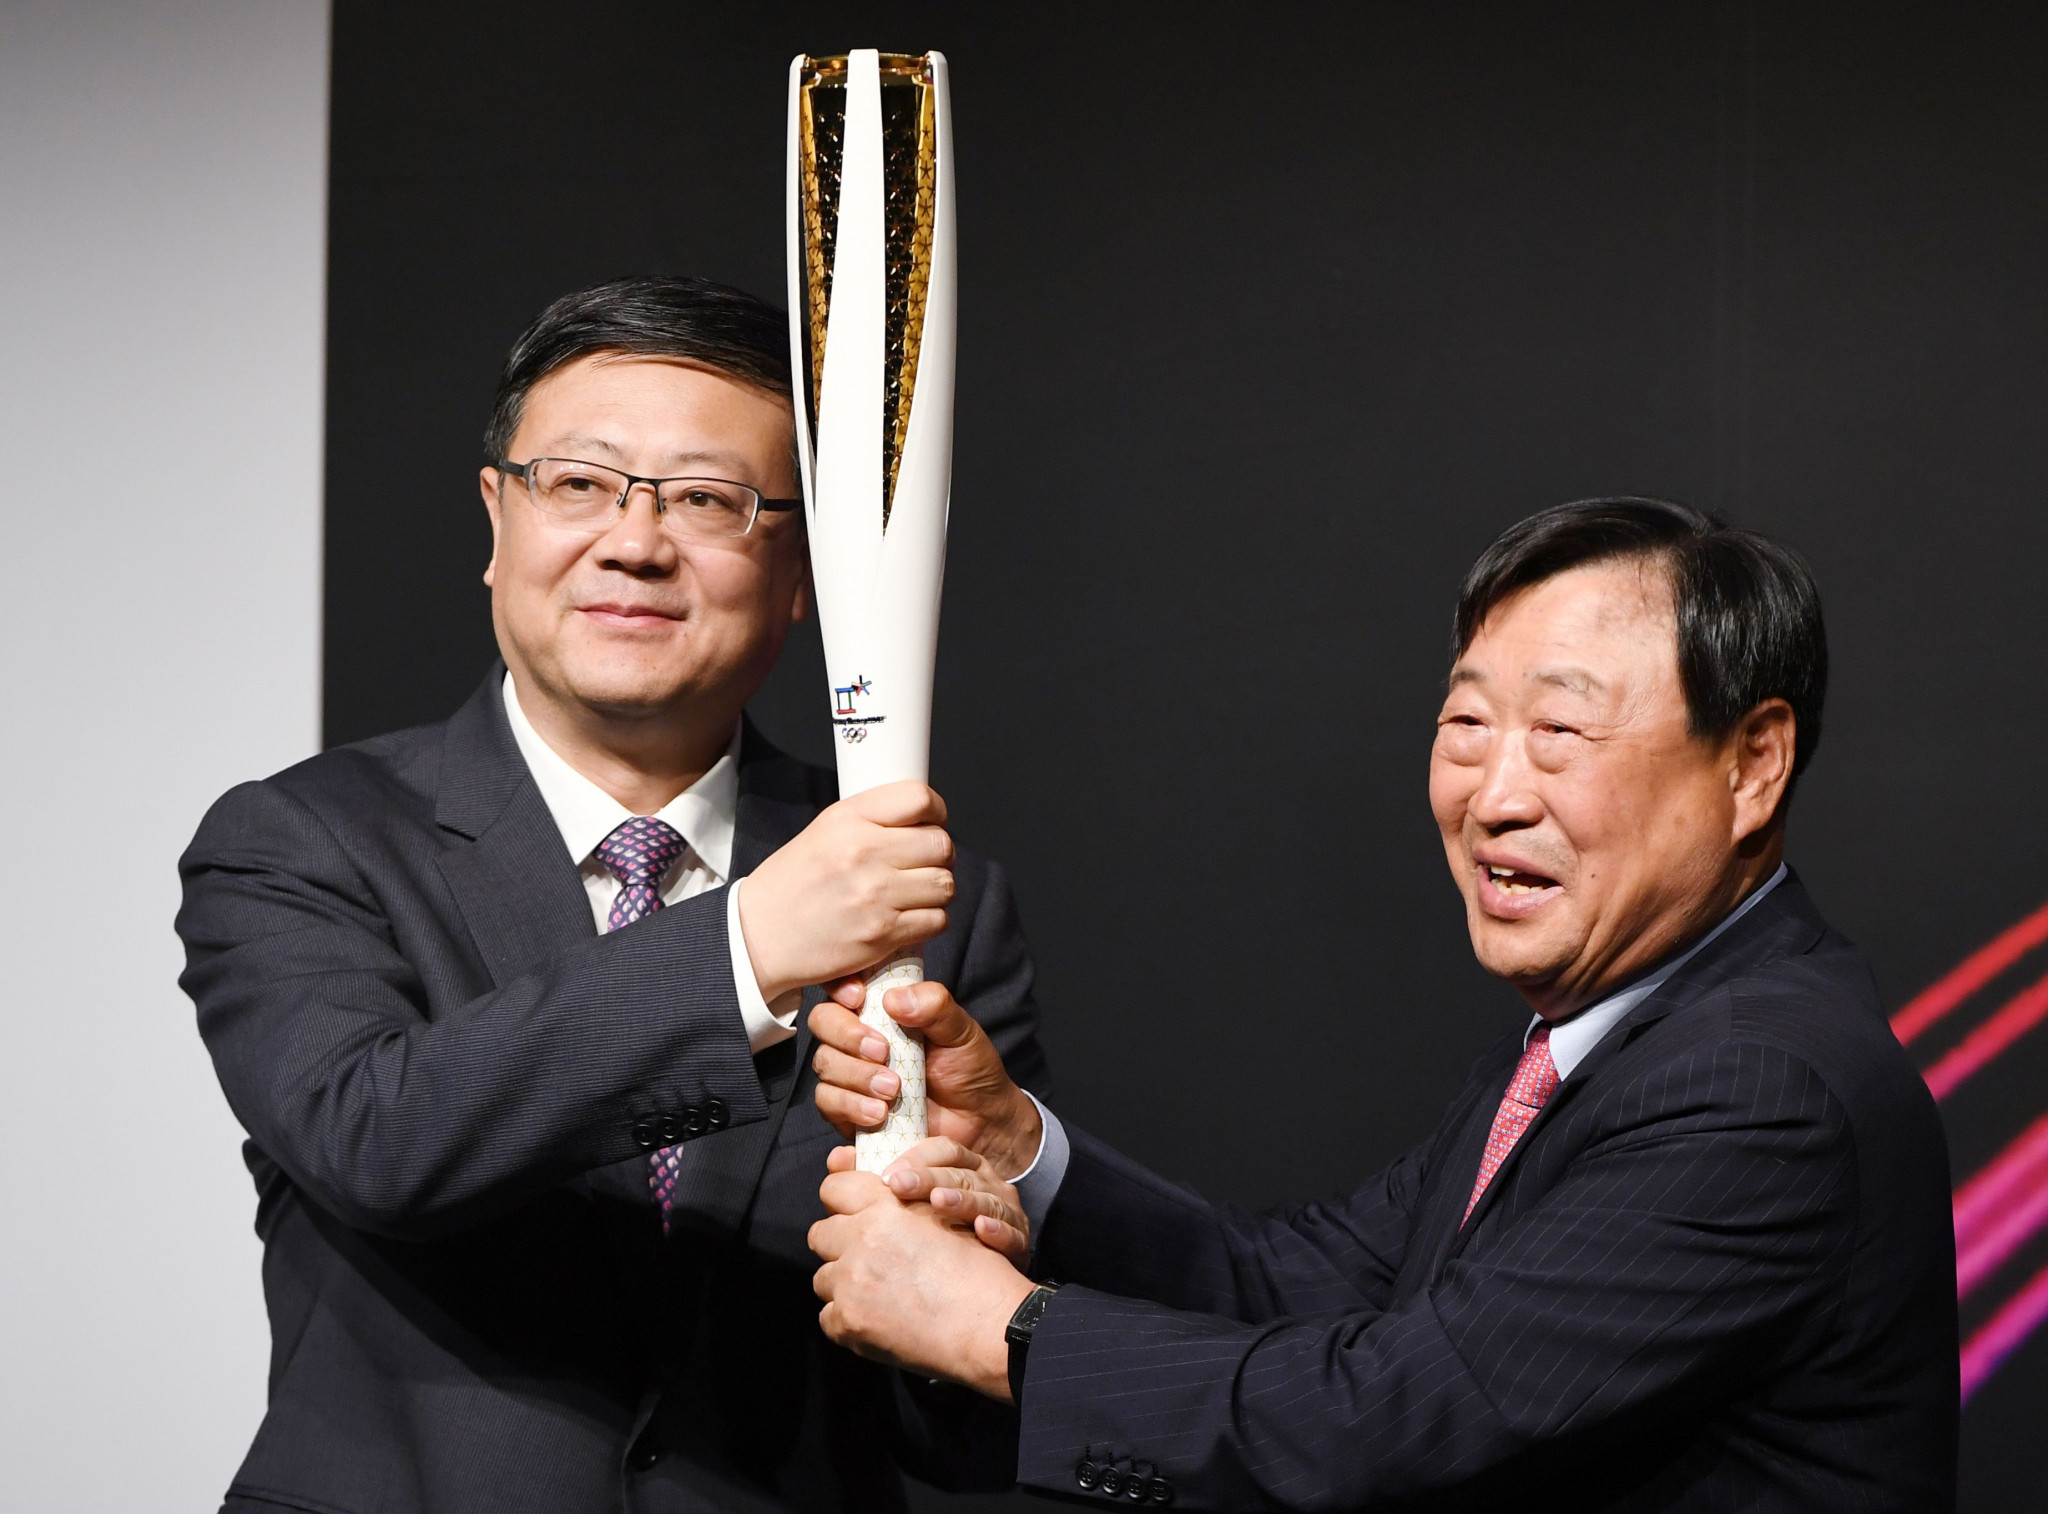 Pyeongchang 2018 President Lee Hee-beom, right, passes the Olympic Torch to Beijing Mayor Chen Jining ©Getty Images